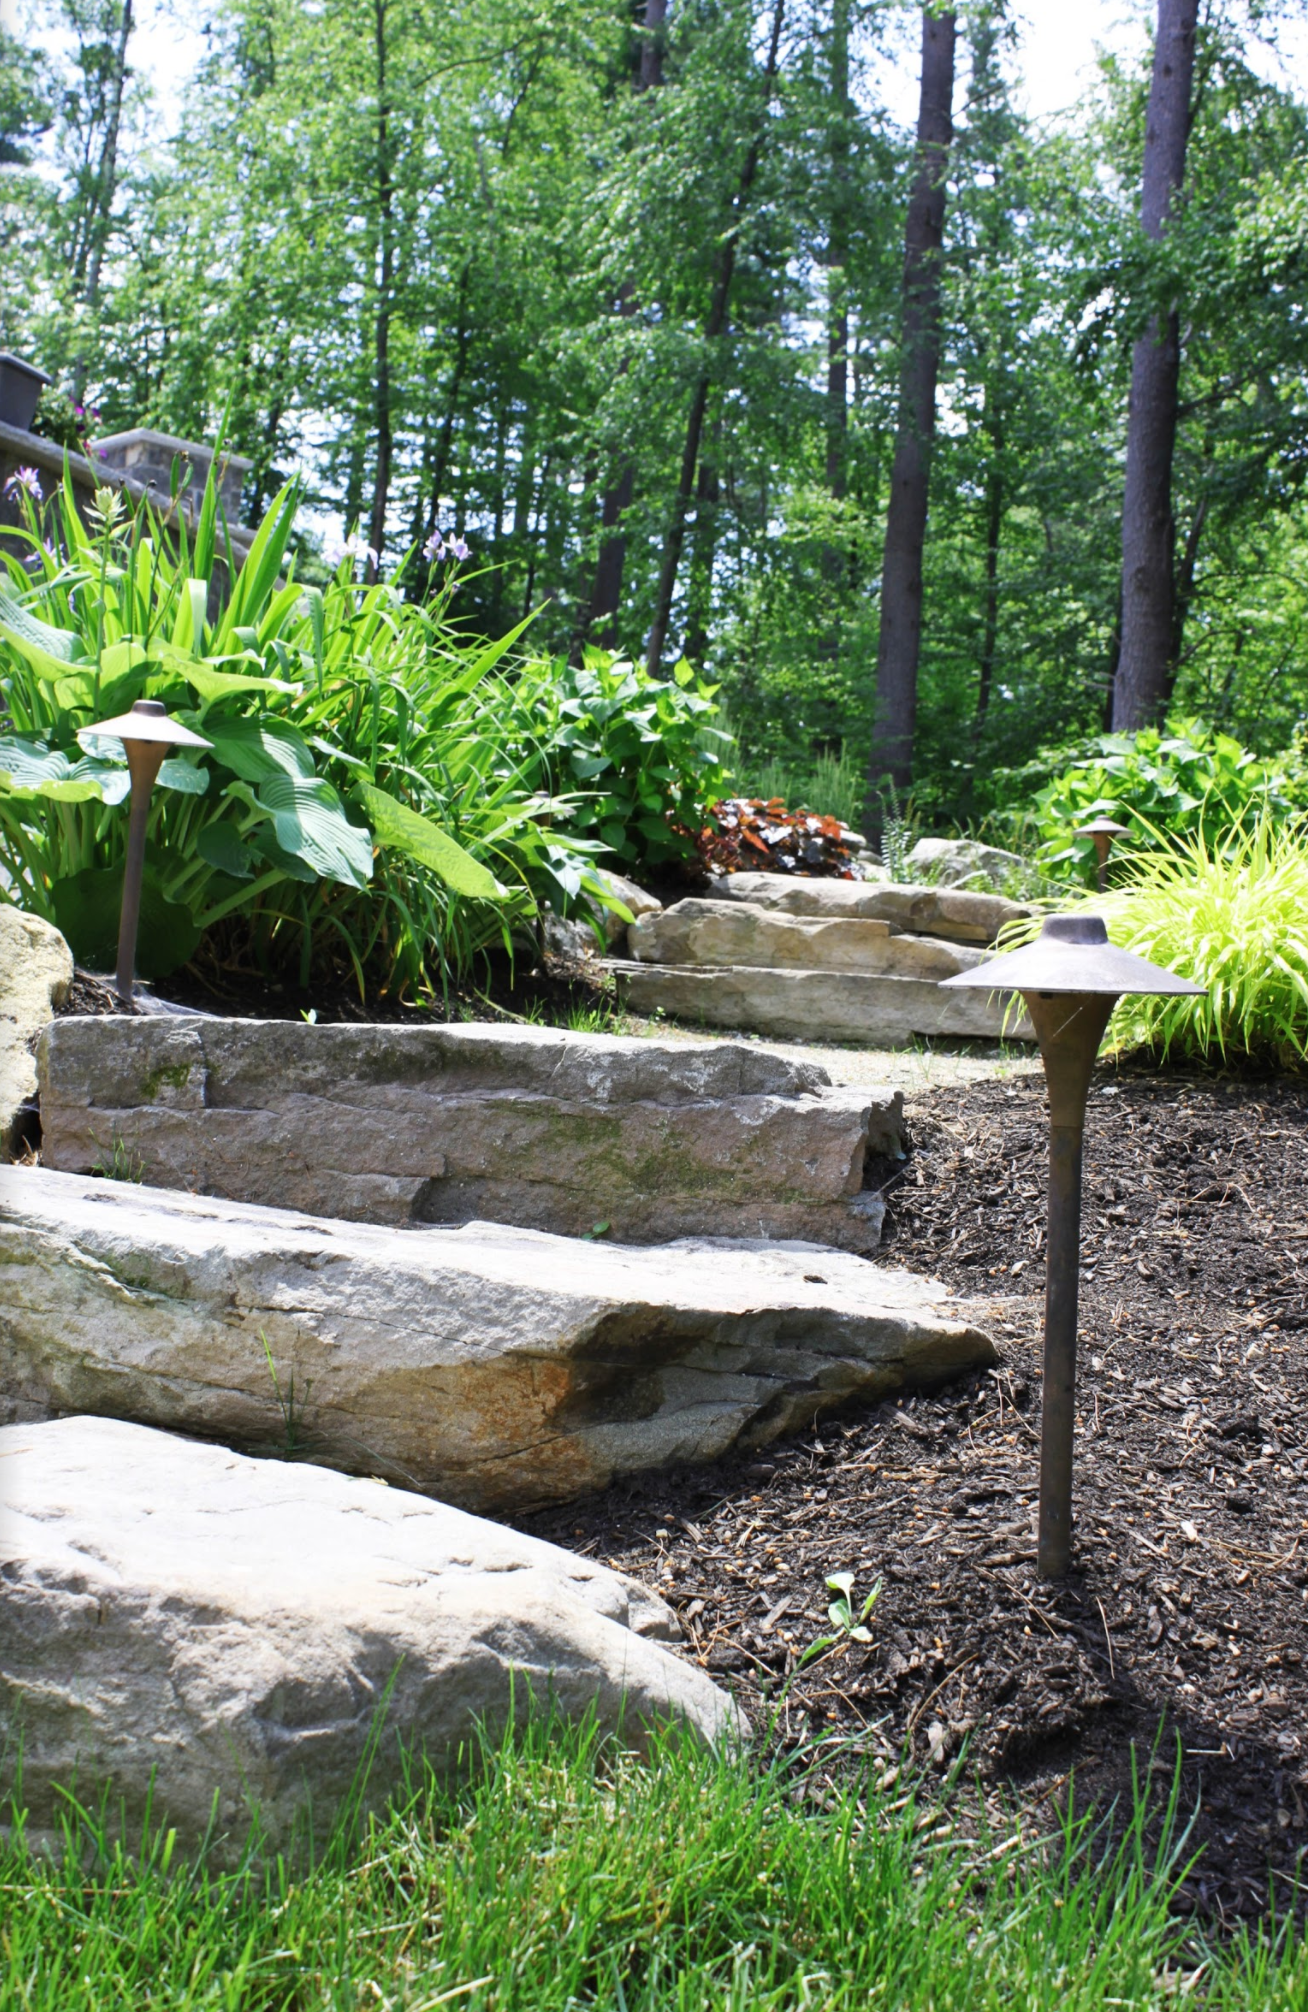 How to Effectively Use Uplighting and Downlighting in Your Landscape Design